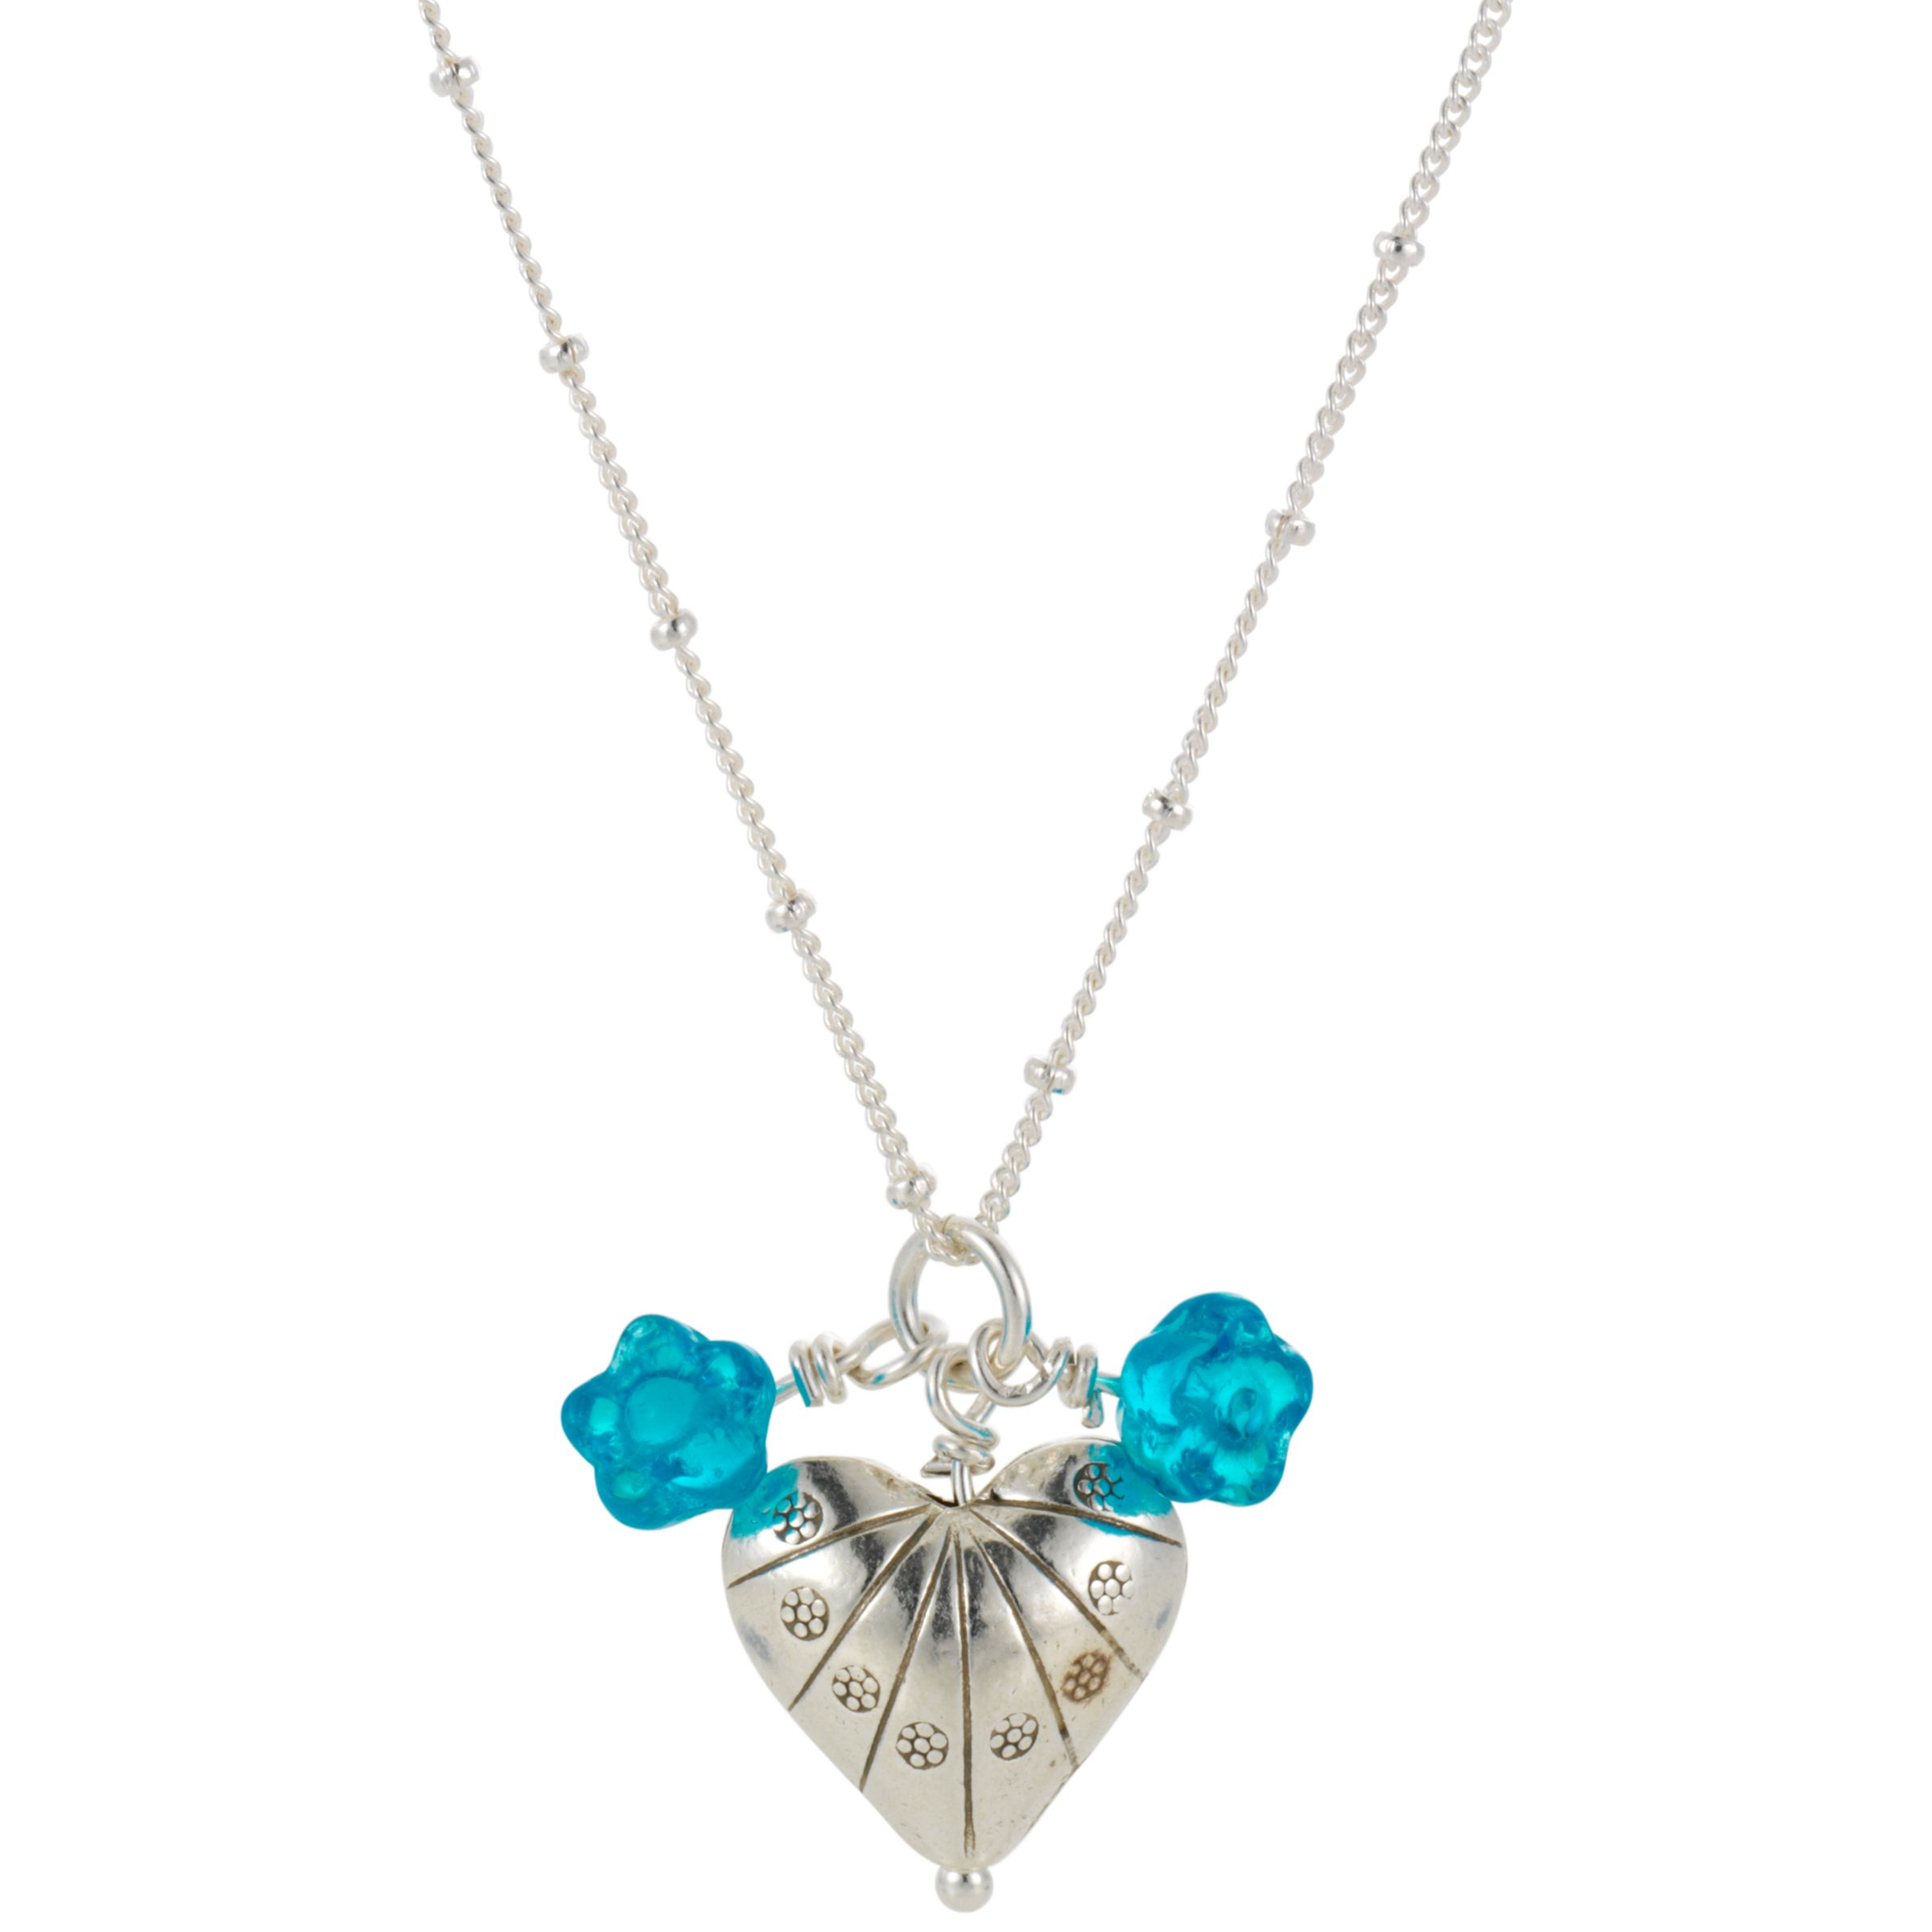 Martick Shelly Silver Heart Blossom Pendant Necklace